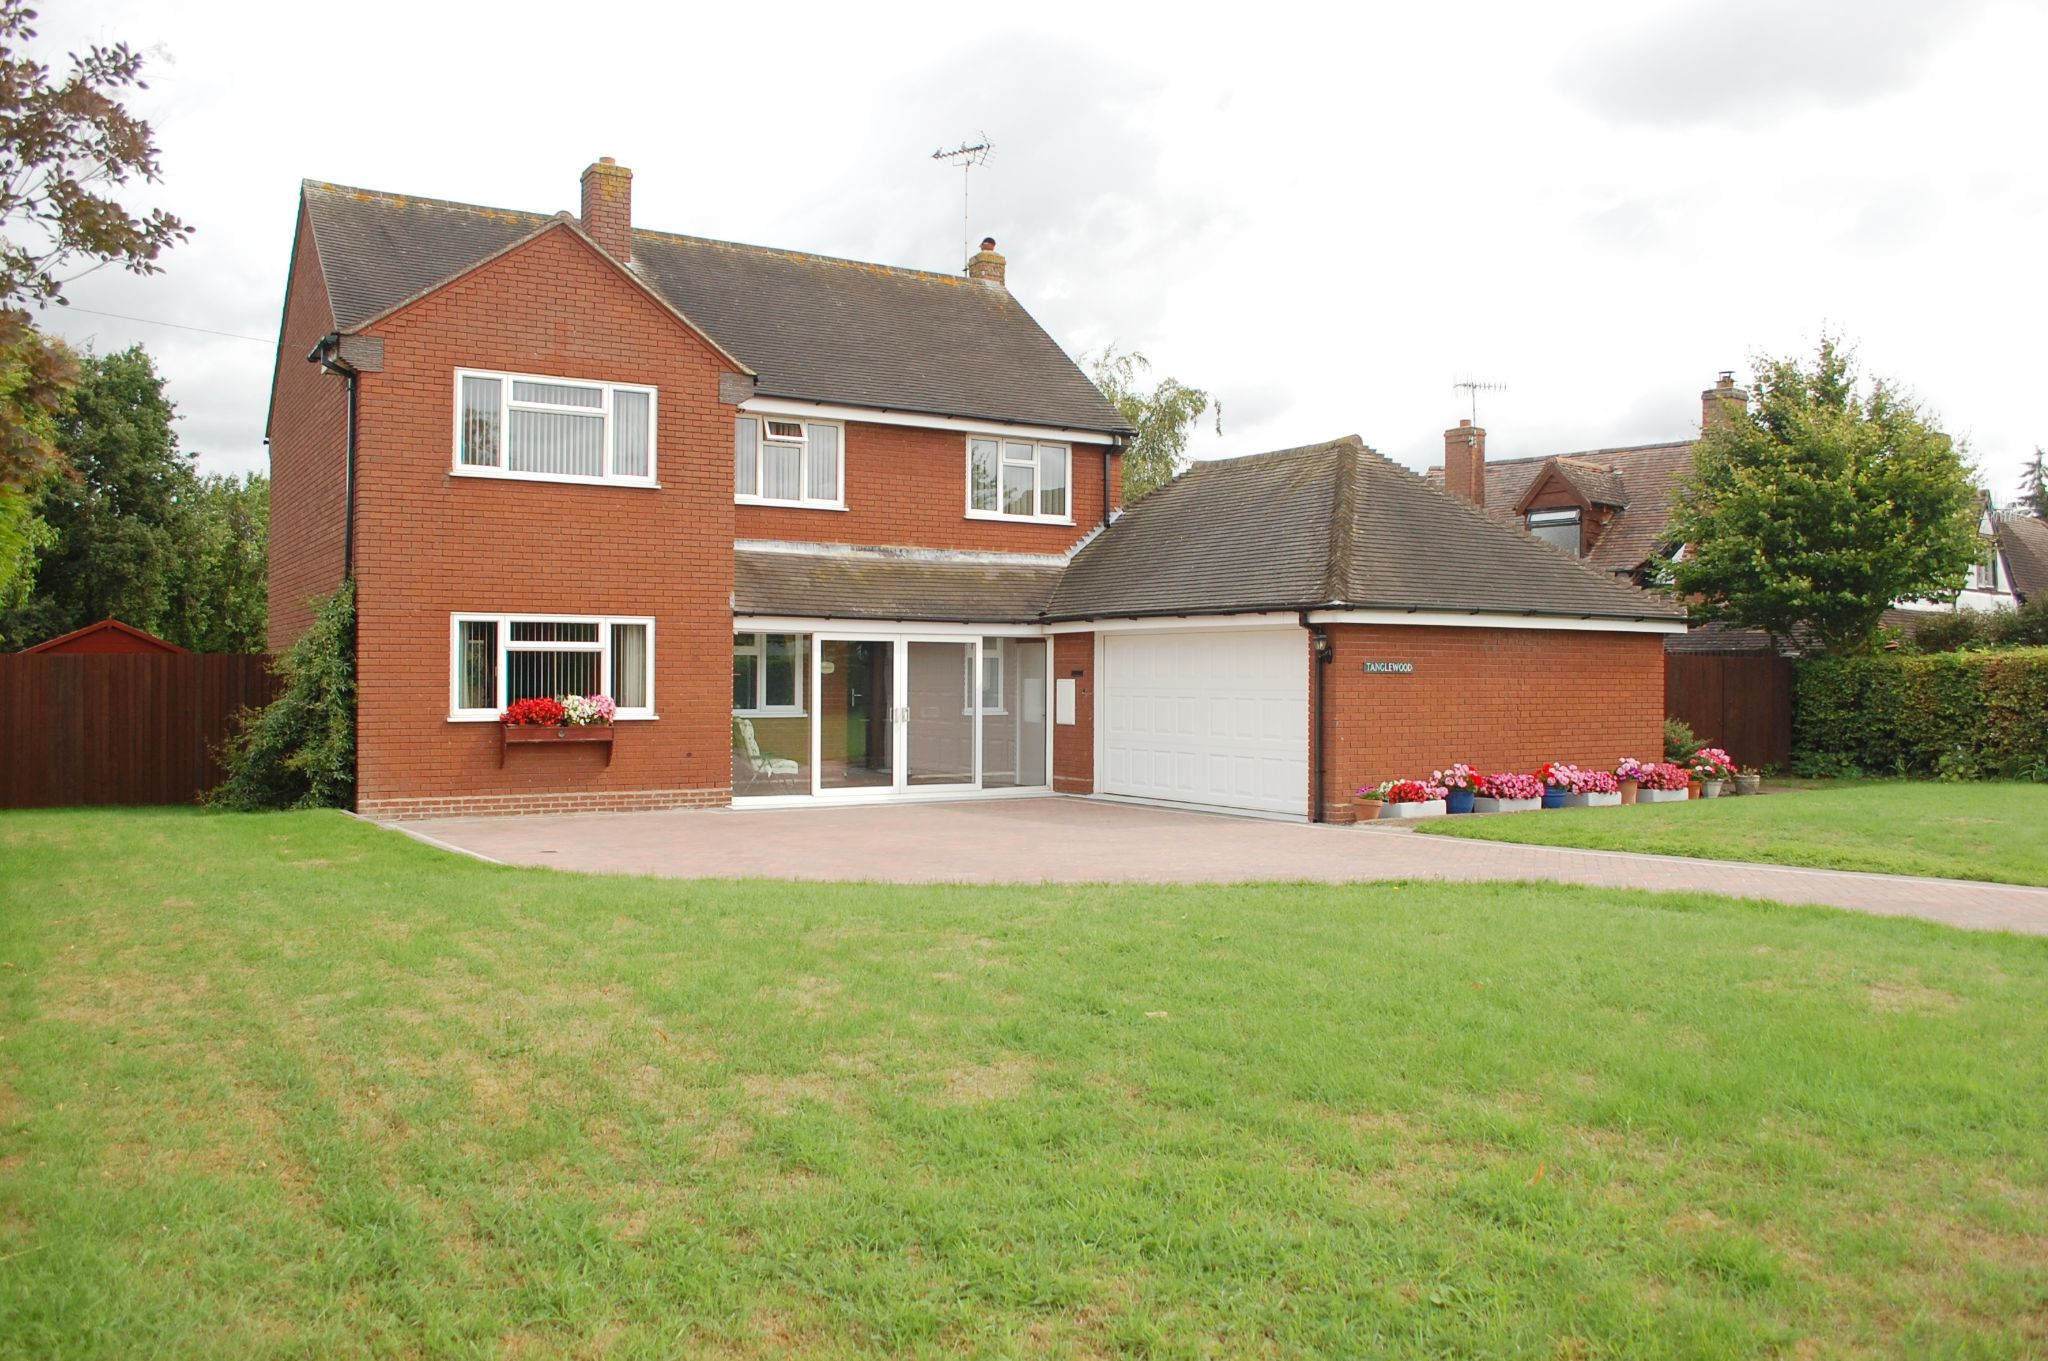 4 bedroom detached house SSTC in Broom Lane, Dunnington, Alcester - Photograph 1